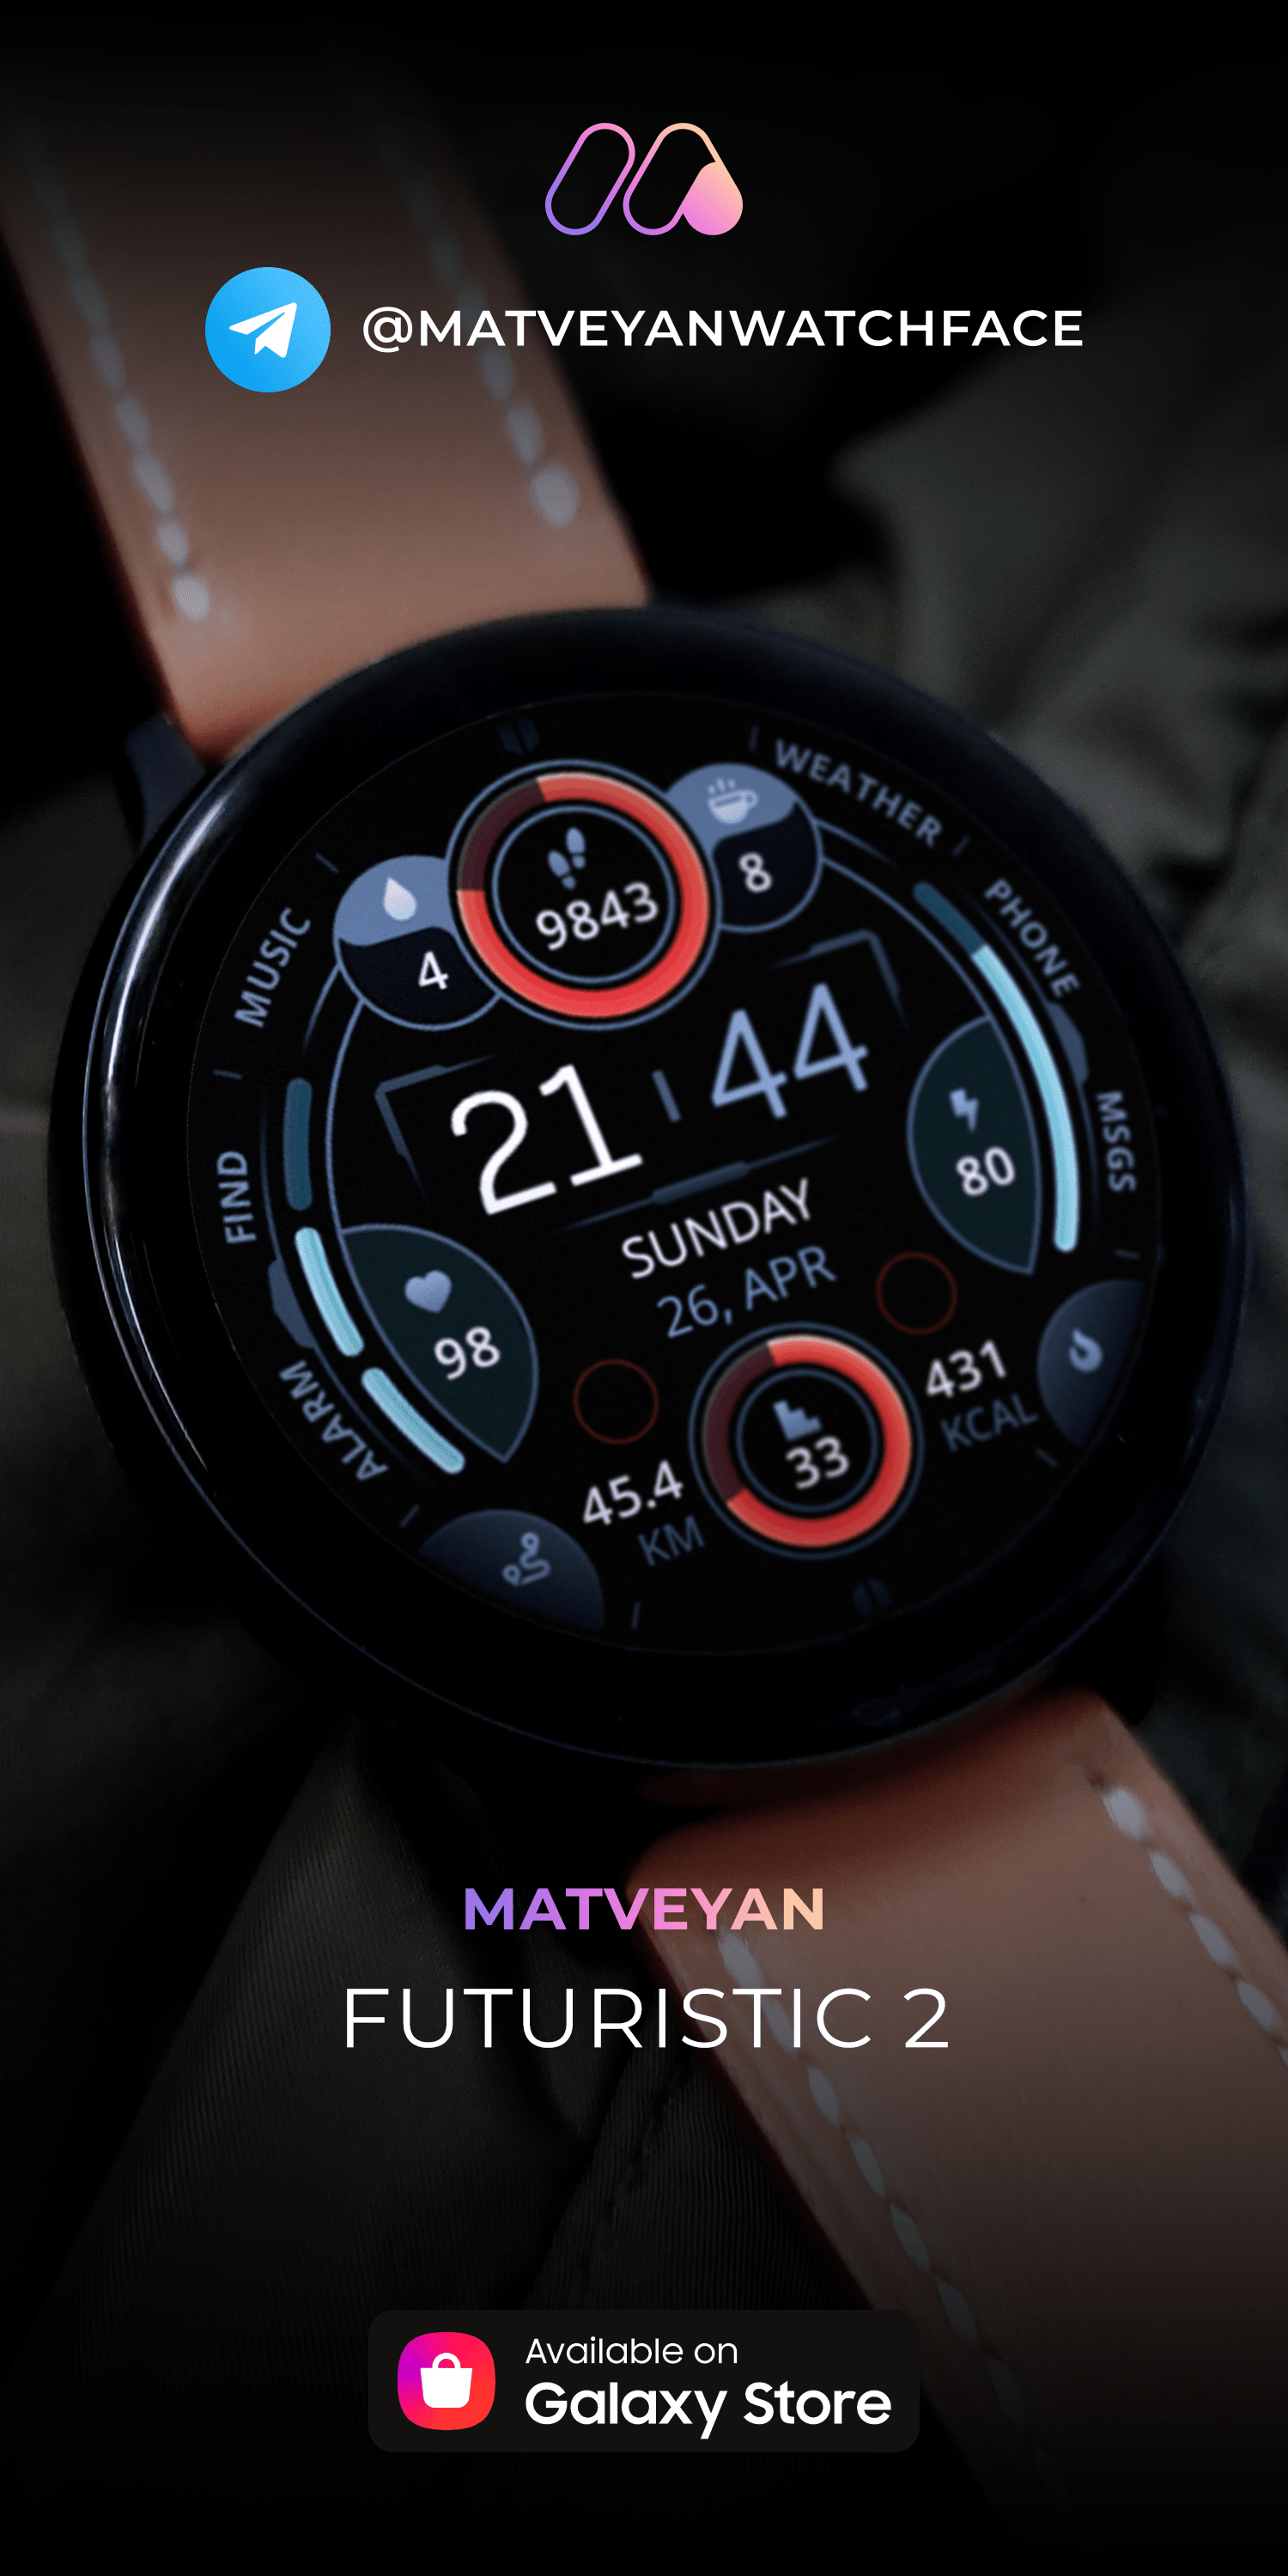 Futuristic 2 Clean Informer Gradient Colors Multilingual Watch Face For Samsung Watch In 2020 Samsung Watches Watch Faces Samsung